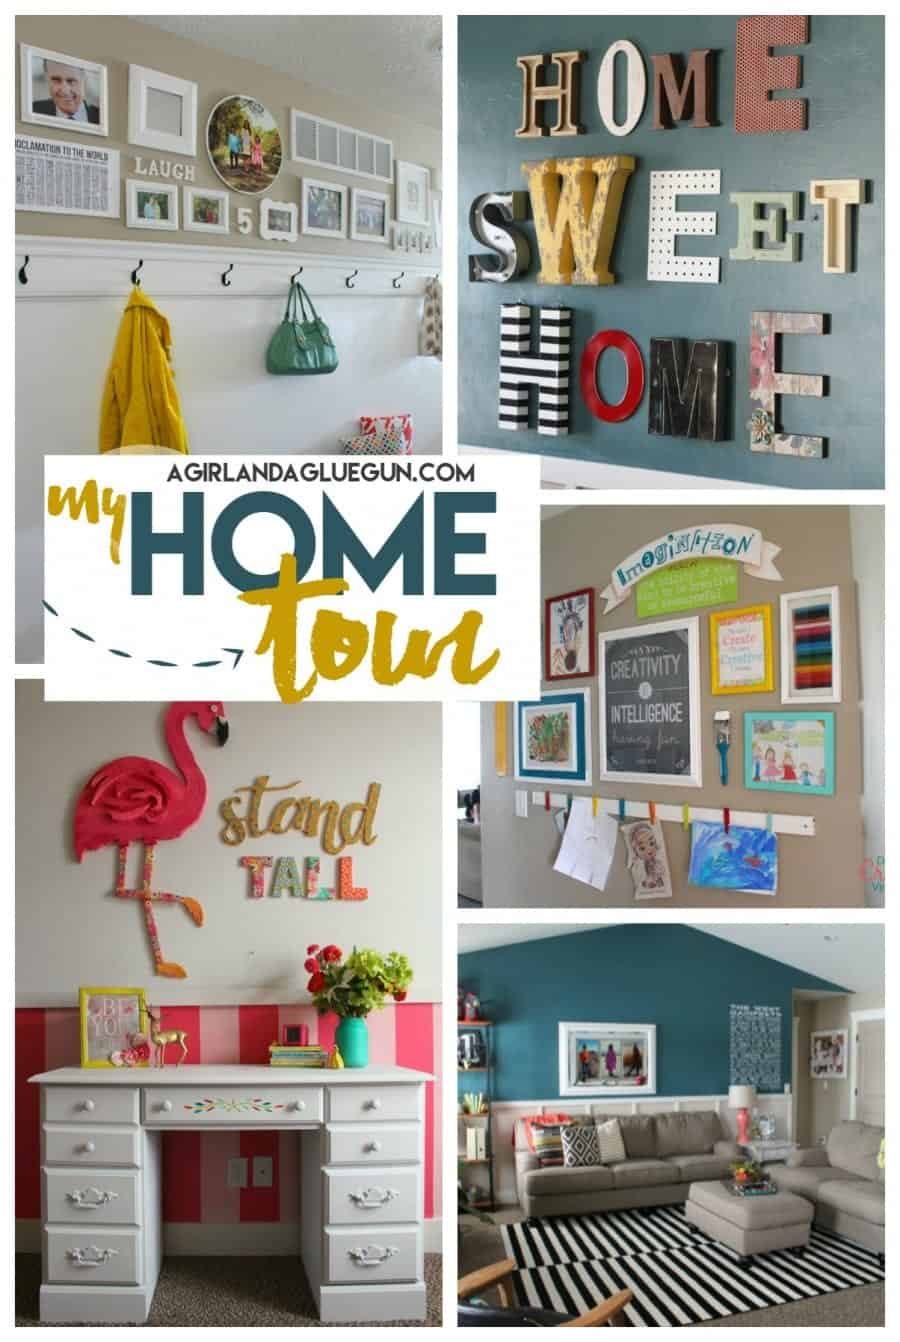 take a peek into my house! fun diys everywhere!